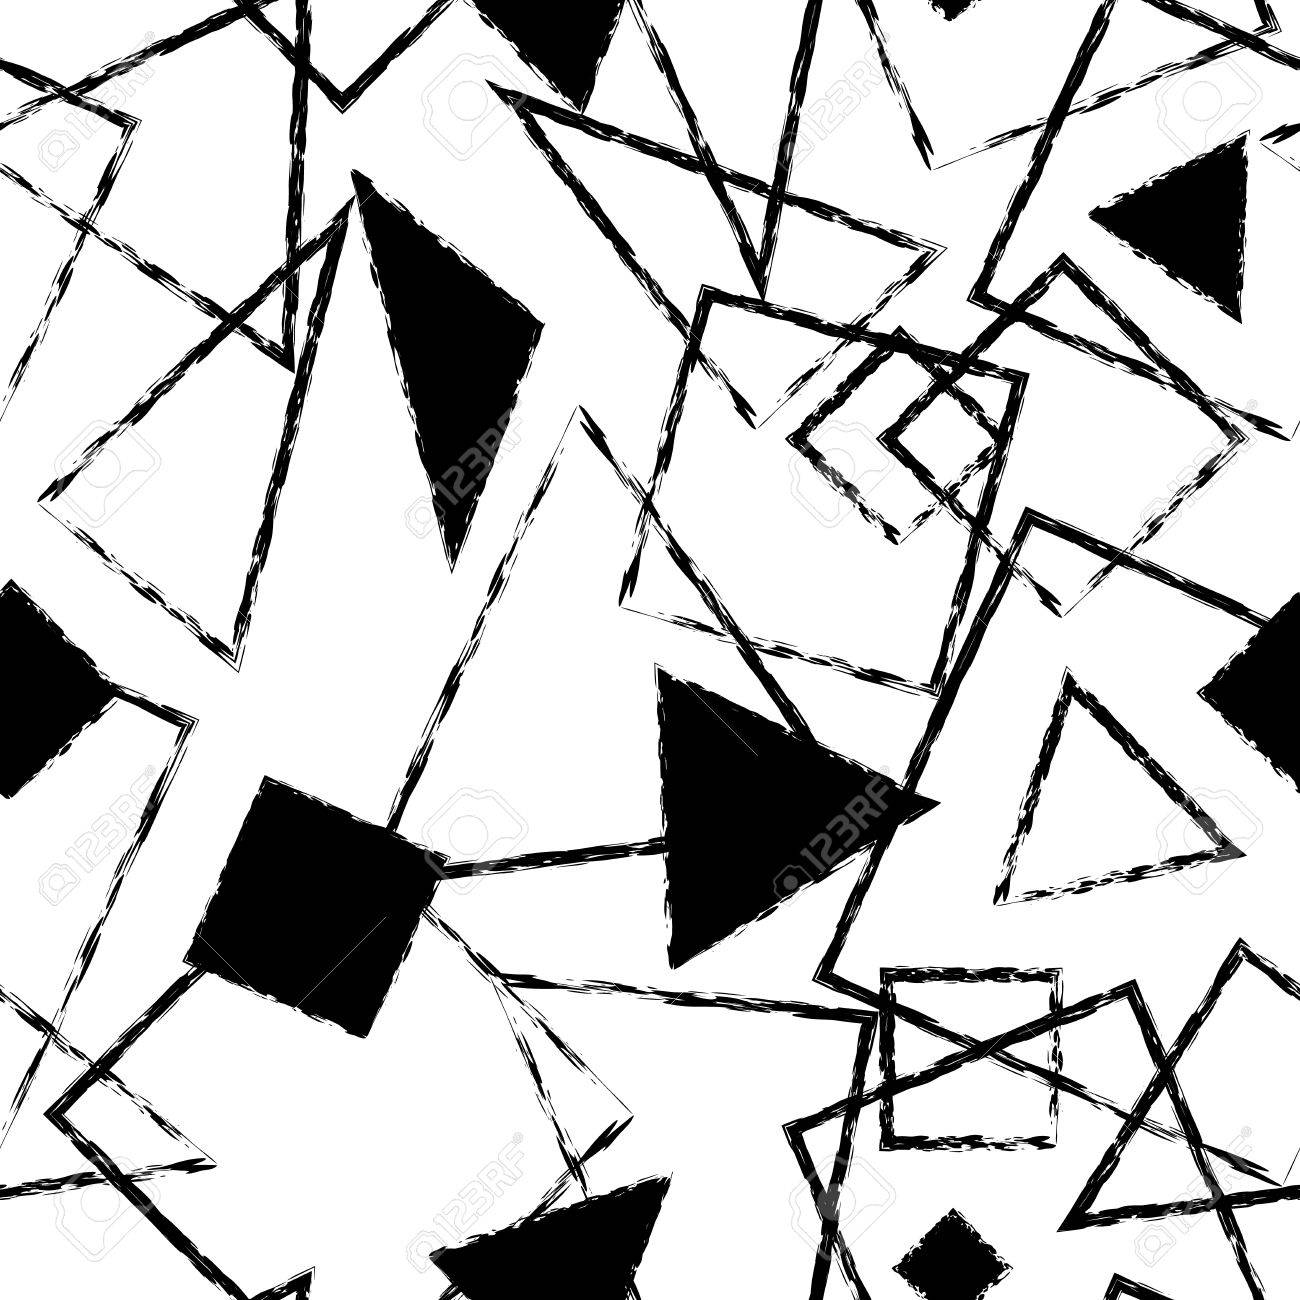 Artistic black and white monochrome seamless pattern with simple geometric shapes overlaying triangle and square